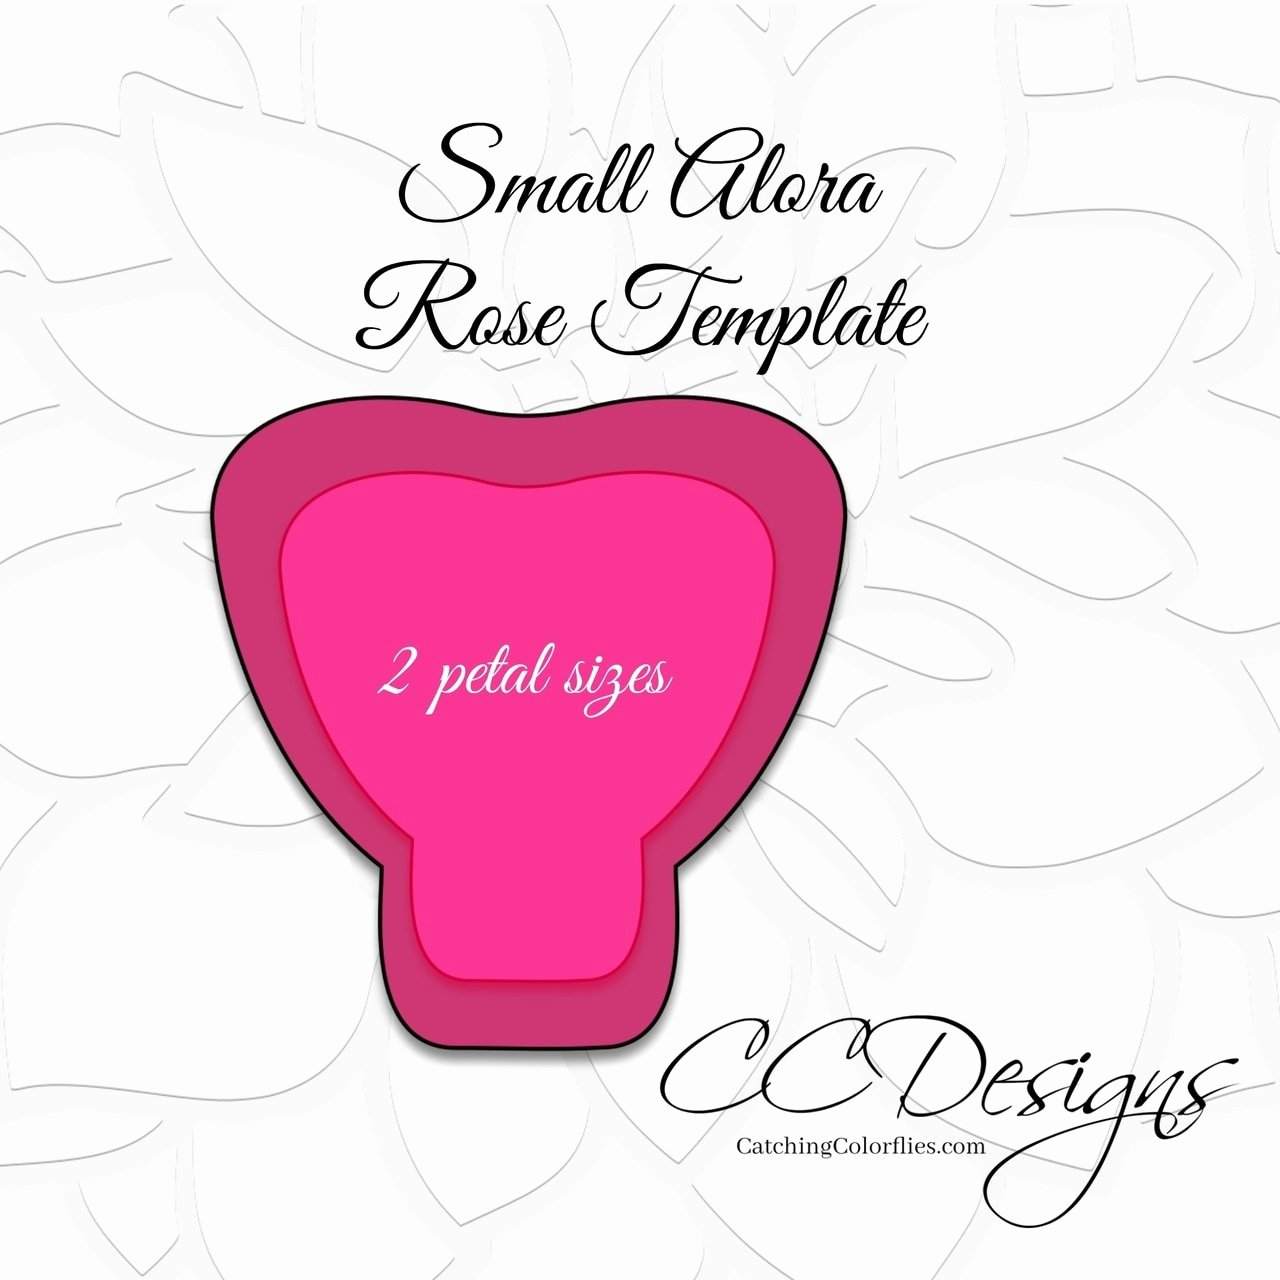 Rose Template Printable Lovely Small Alora Paper Rose Template Catching Colorlfies